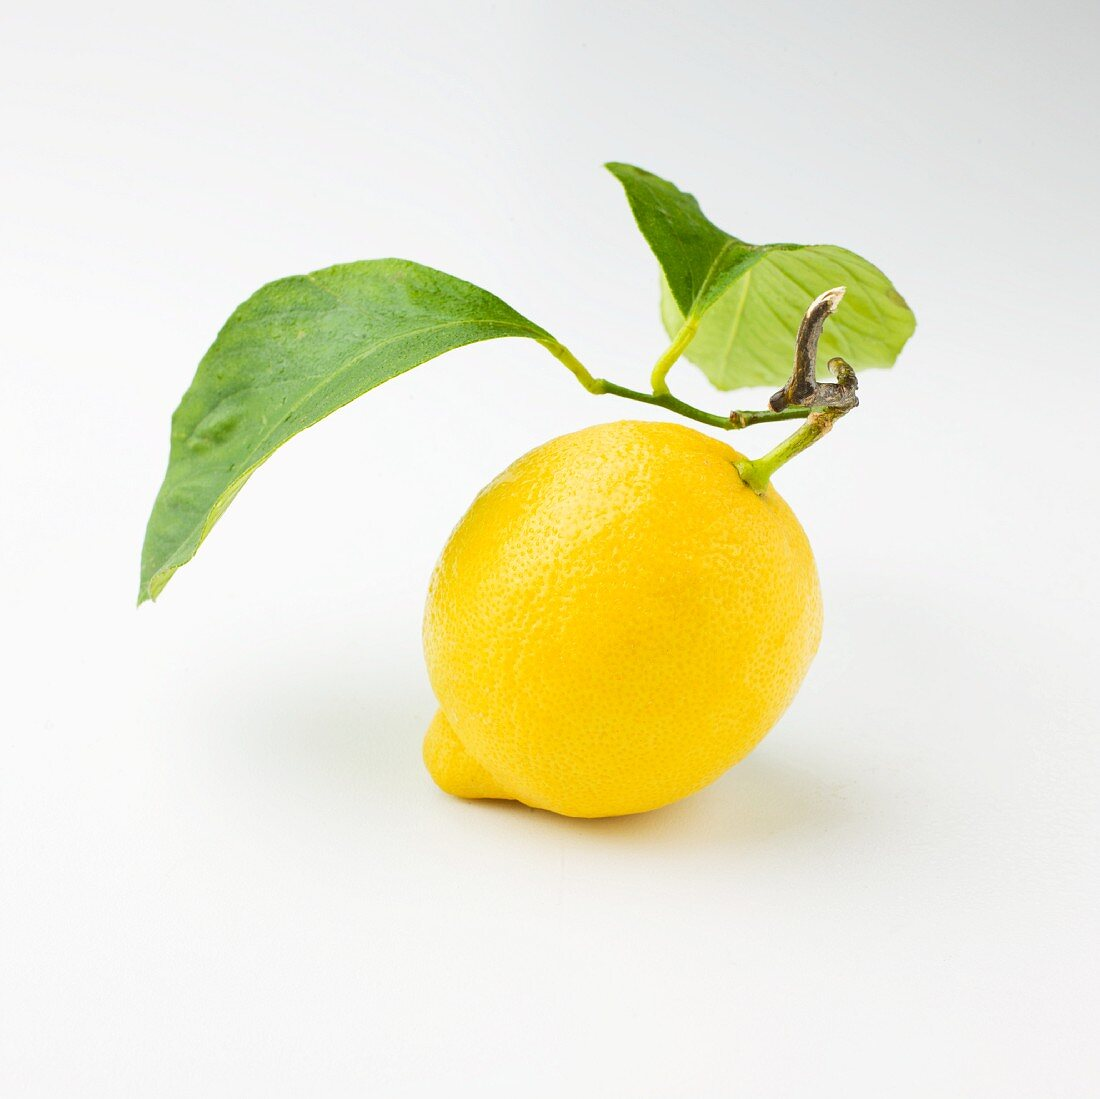 A lemon with a stem and leaves